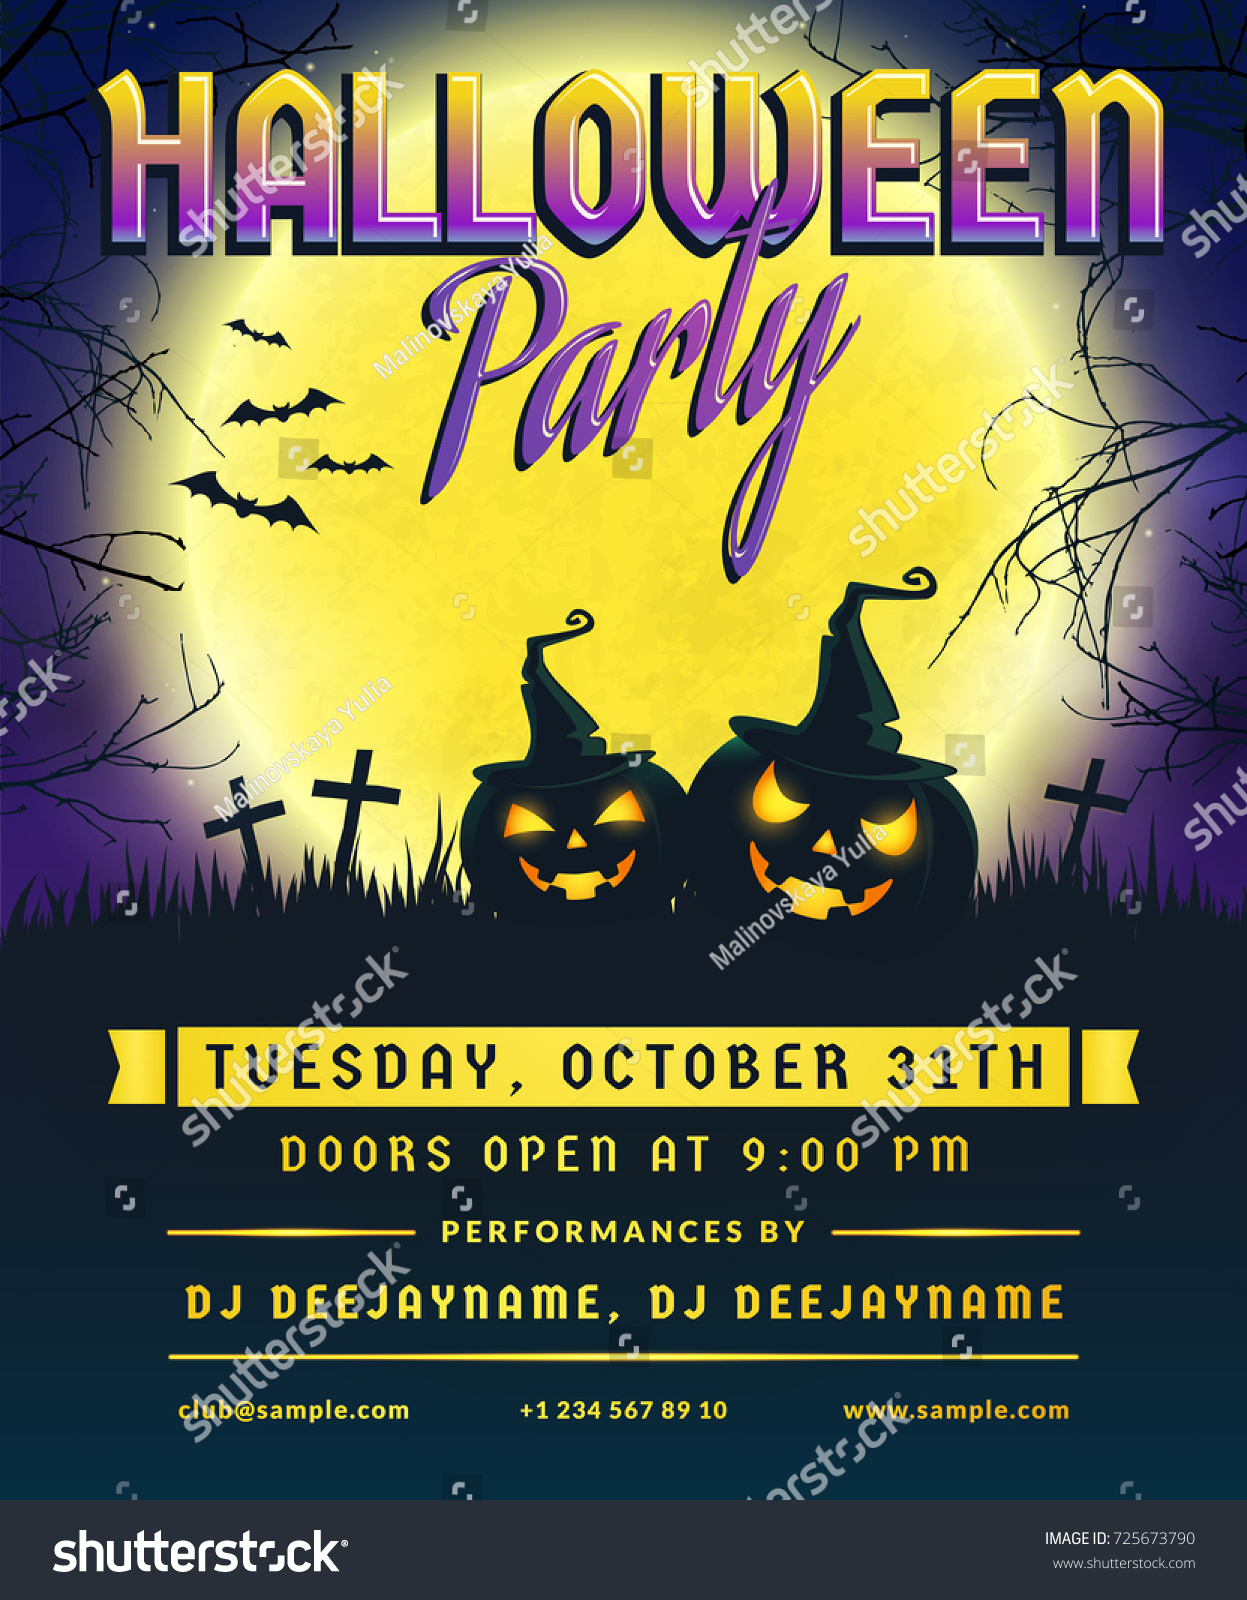 Halloween party invitation flyer template full stock vector halloween party invitation flyer template with full moon scary trees and evil pumpkins stopboris Choice Image